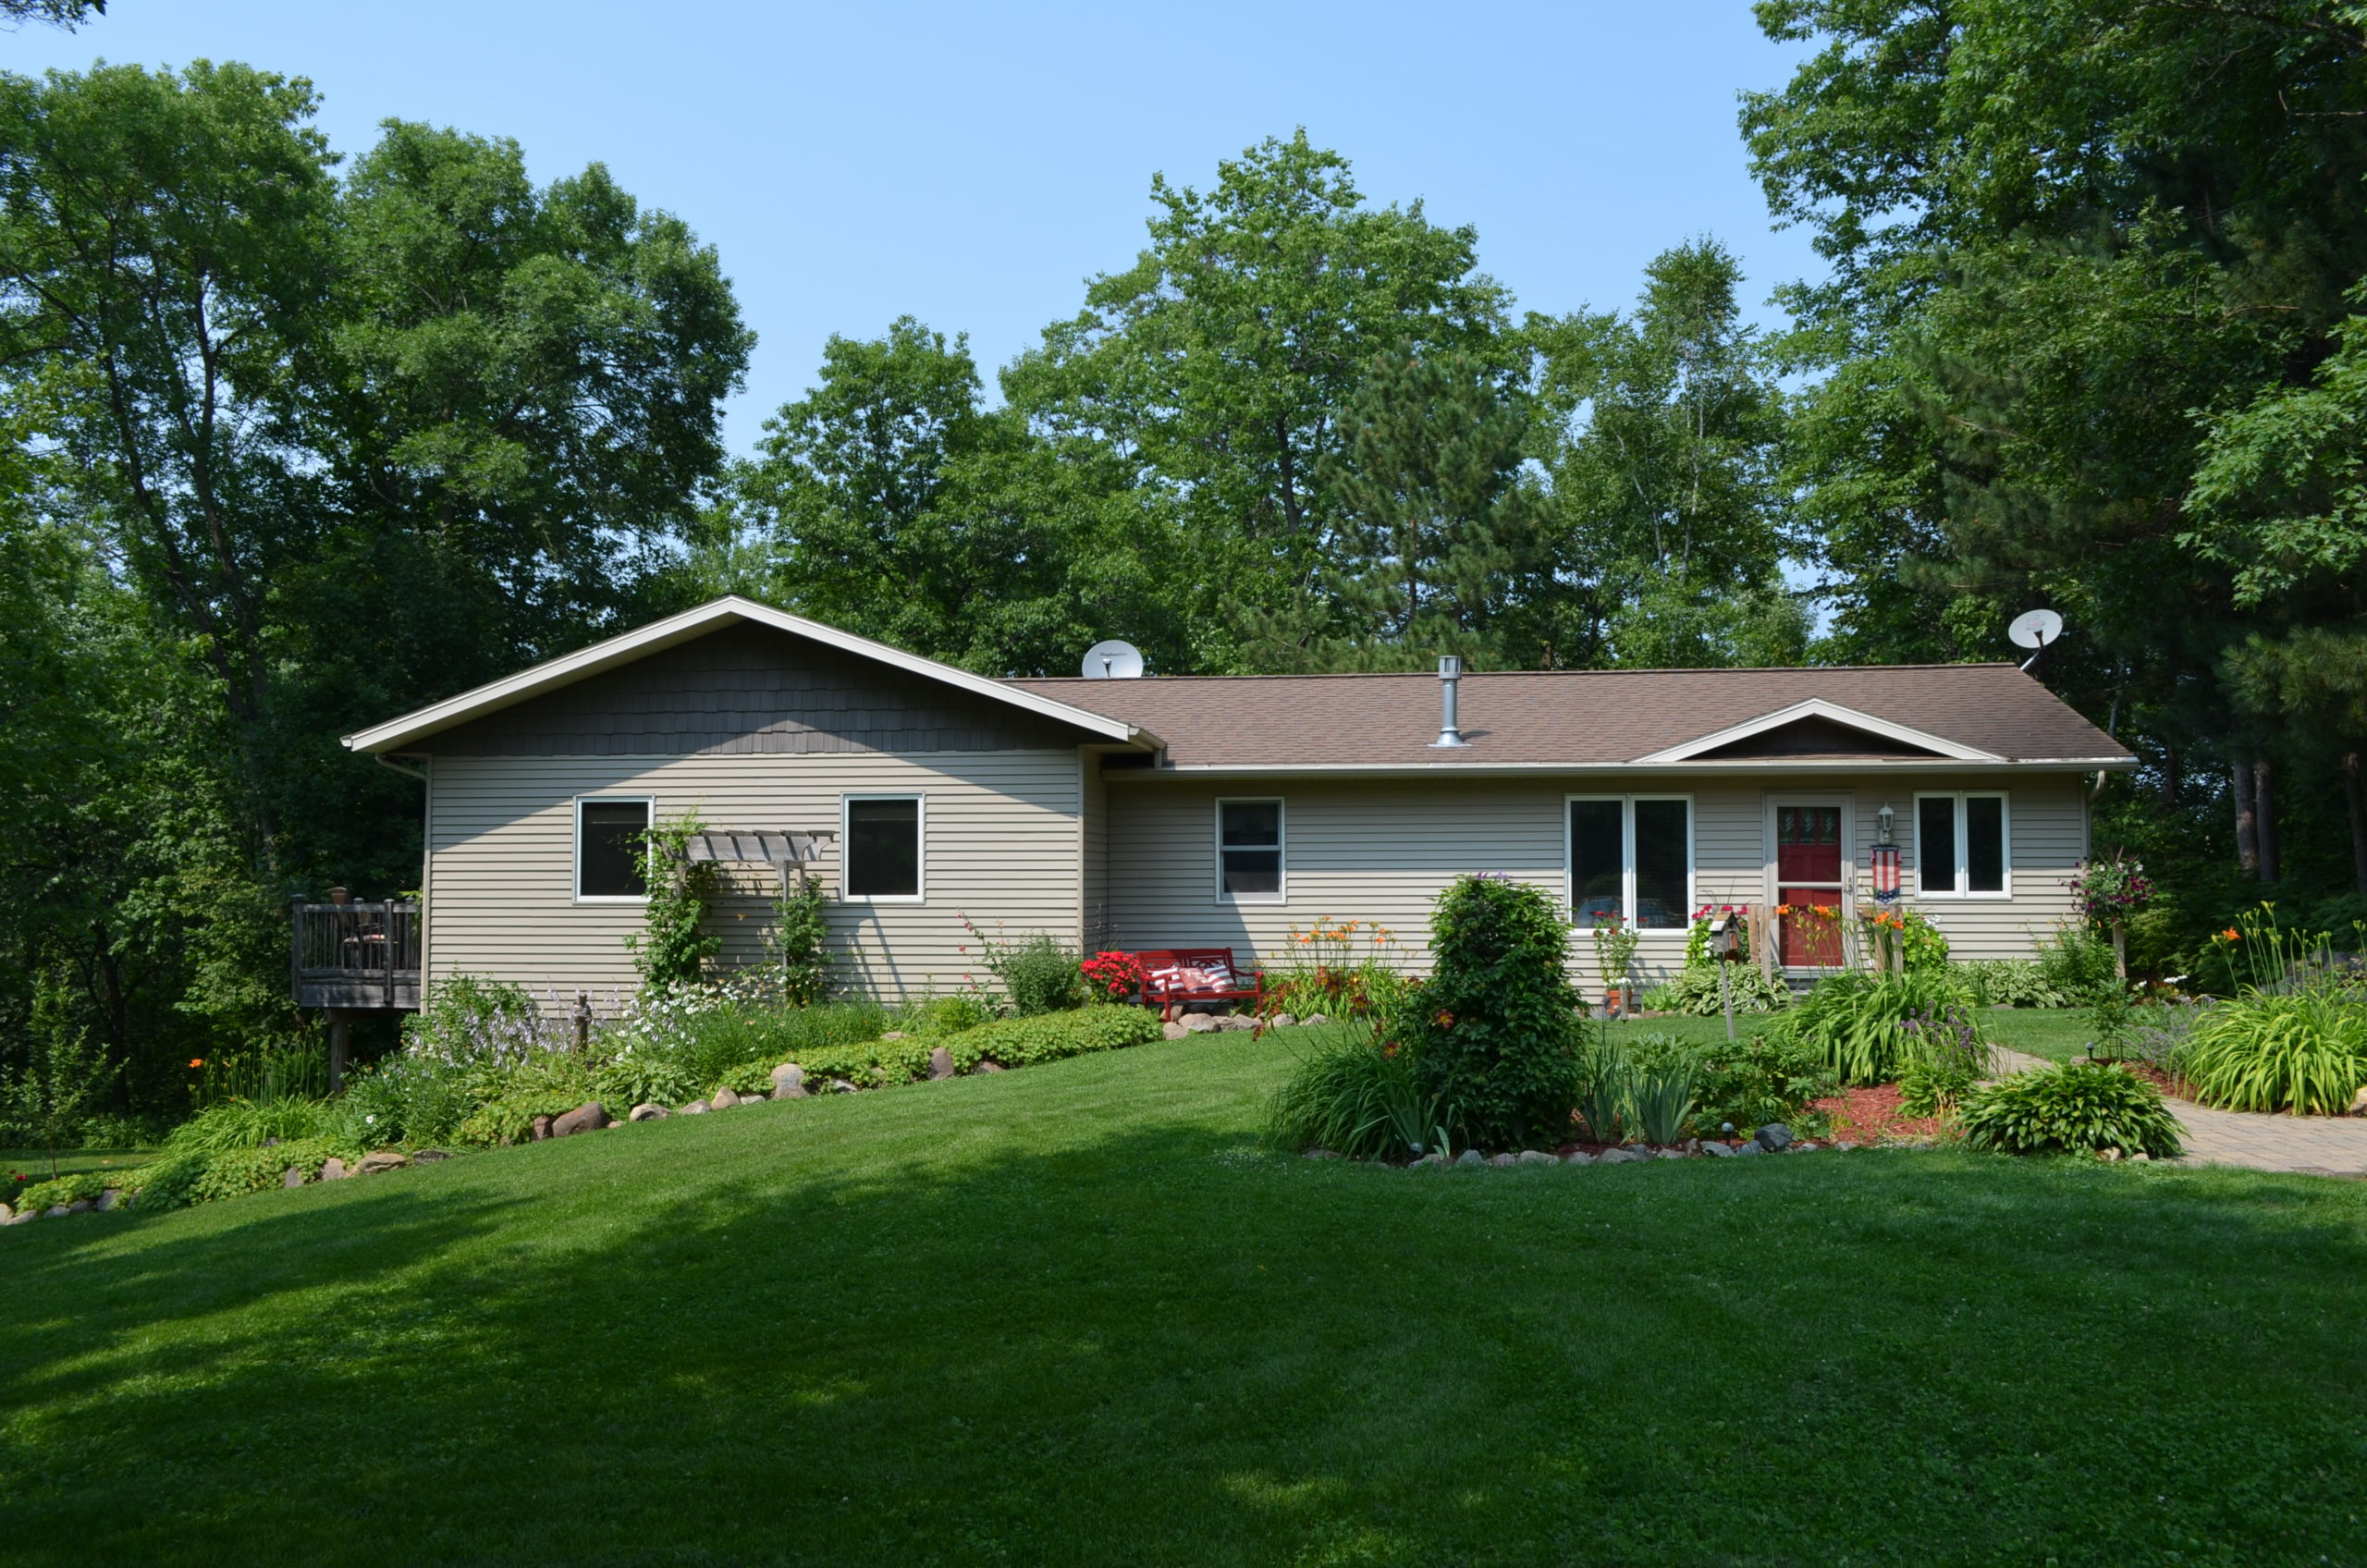 11021 County 77 SW. Nisswa, MN 56468 (3Bed 3Bath House & Shop on 11+ Acres!)